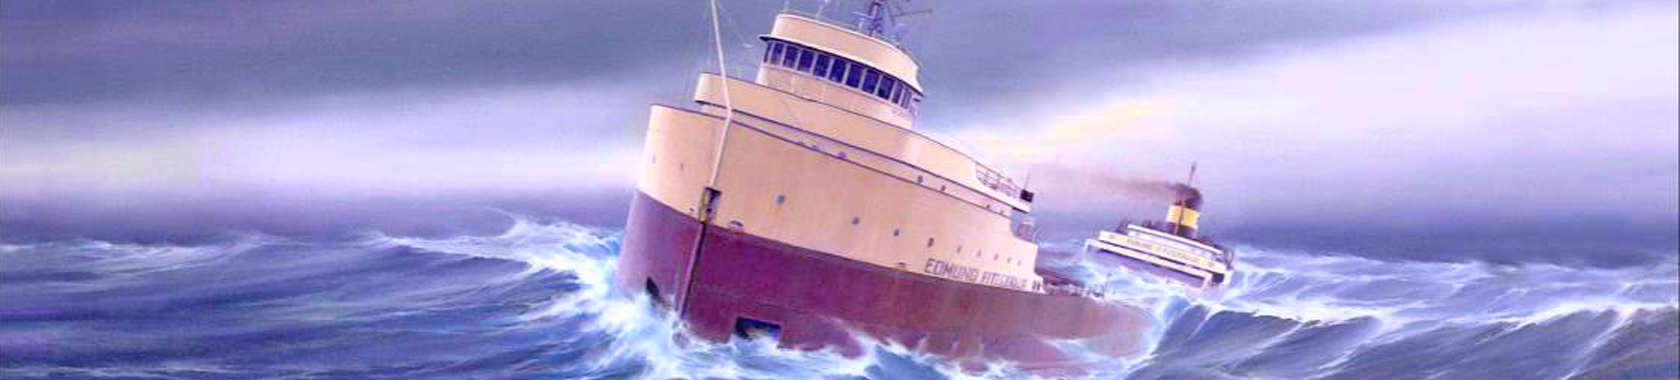 Teas at Two: The Legend Lives On Edmund Fitzgerald